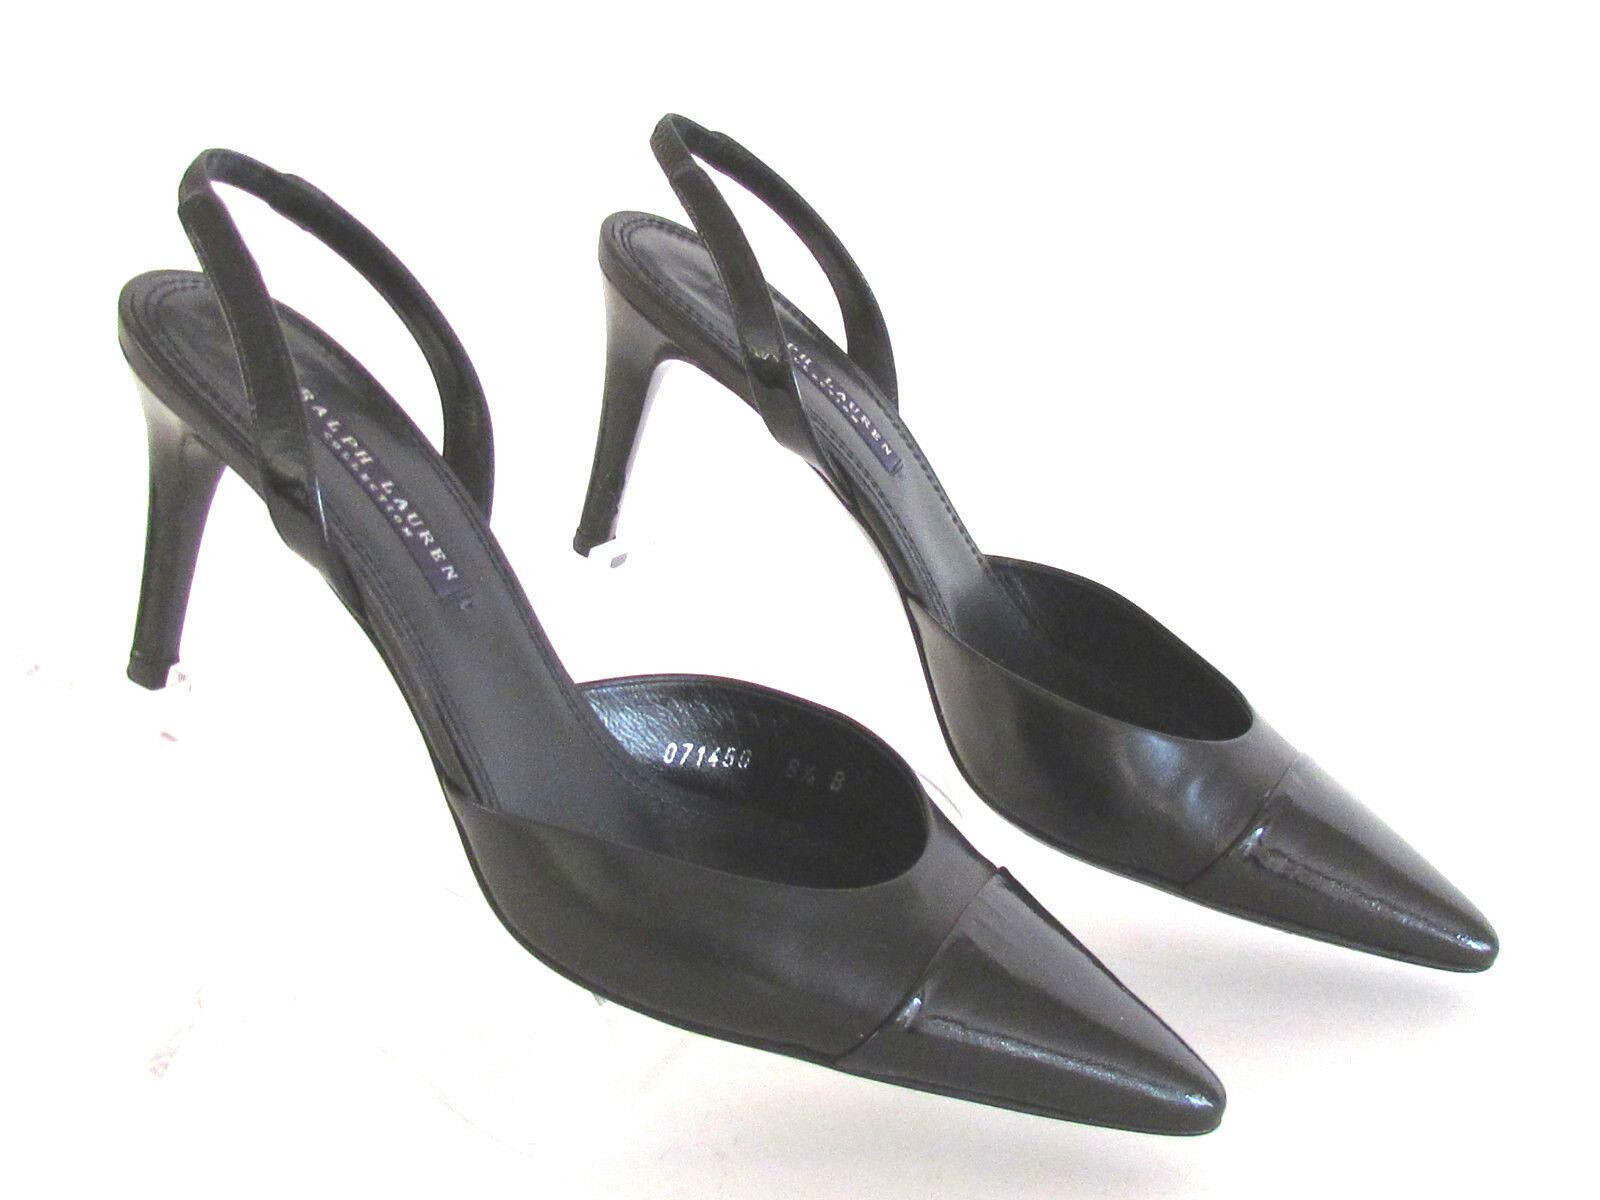 DESIGNER RALPH LAUREN COLLECTION BLACK LEATHER SLINGBACK PUMPS SIZE-8.5 SIZE-8.5 SIZE-8.5 MED 4938da